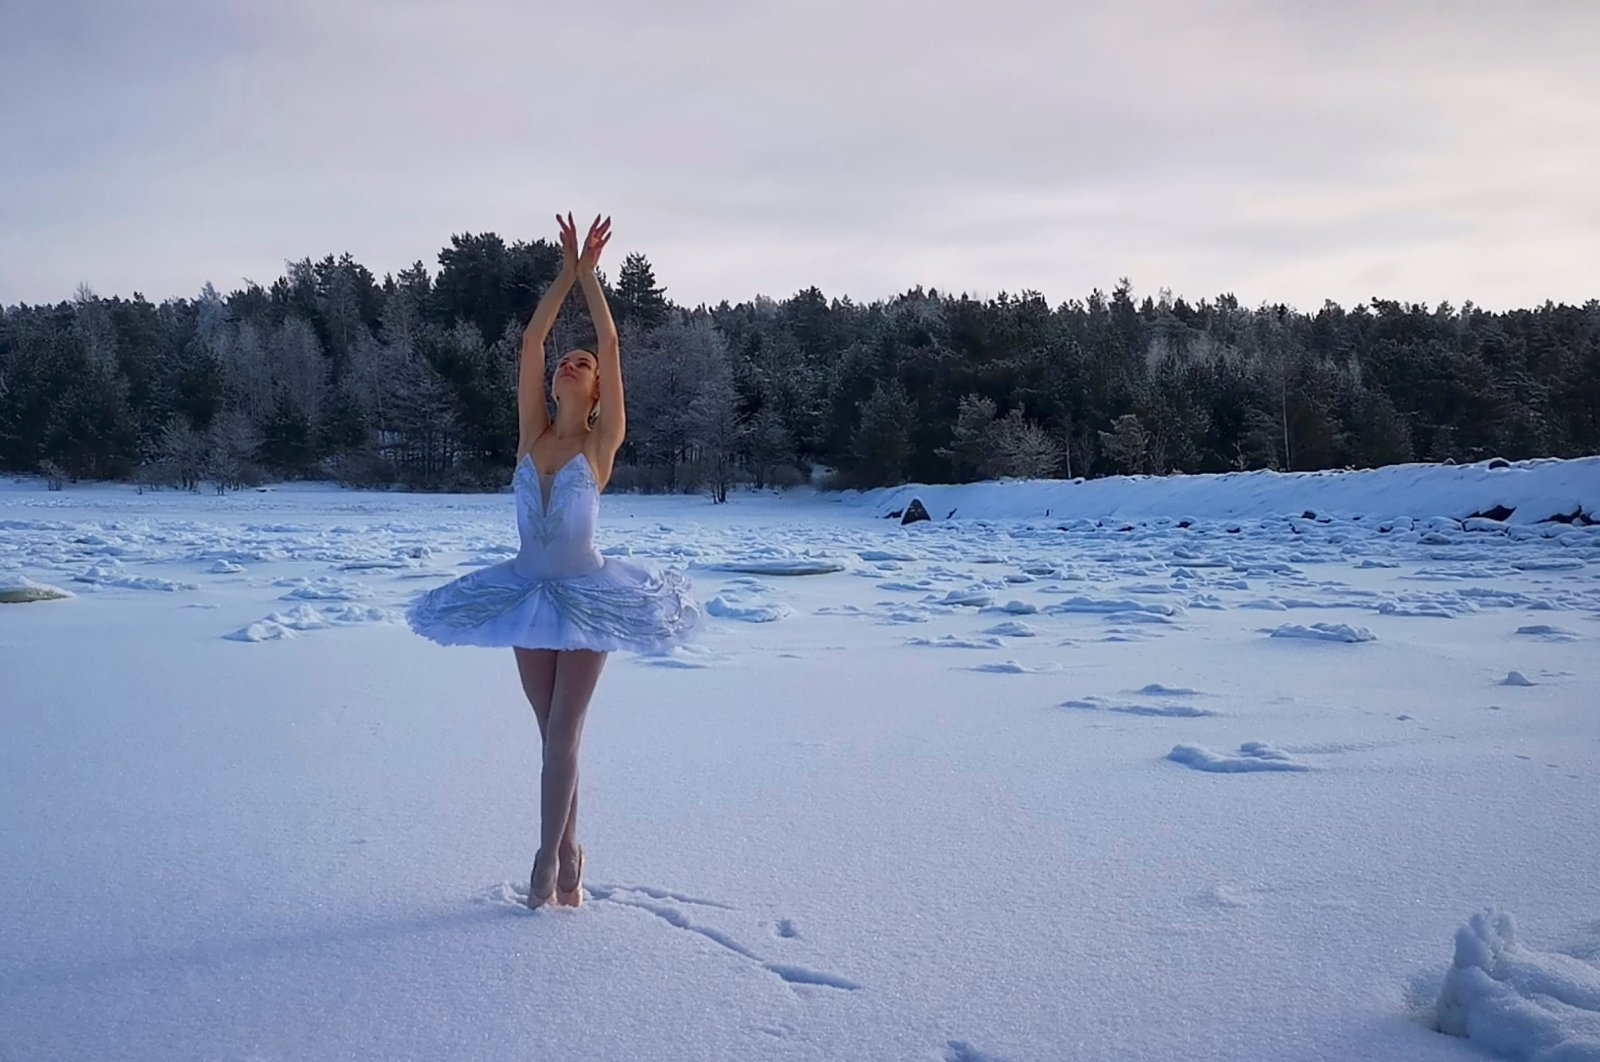 Ilmira Bagautdinova, a ballet dancer from Mariinsky Theater, performs on the ice of frozen Batareynaya Bay to protest the construction of a grain terminal and other infrastructure in the Gulf of Finland, in the Leningrad region, Russia, in this still image taken from video released on Feb. 20, 2021. (Reuters Photo)